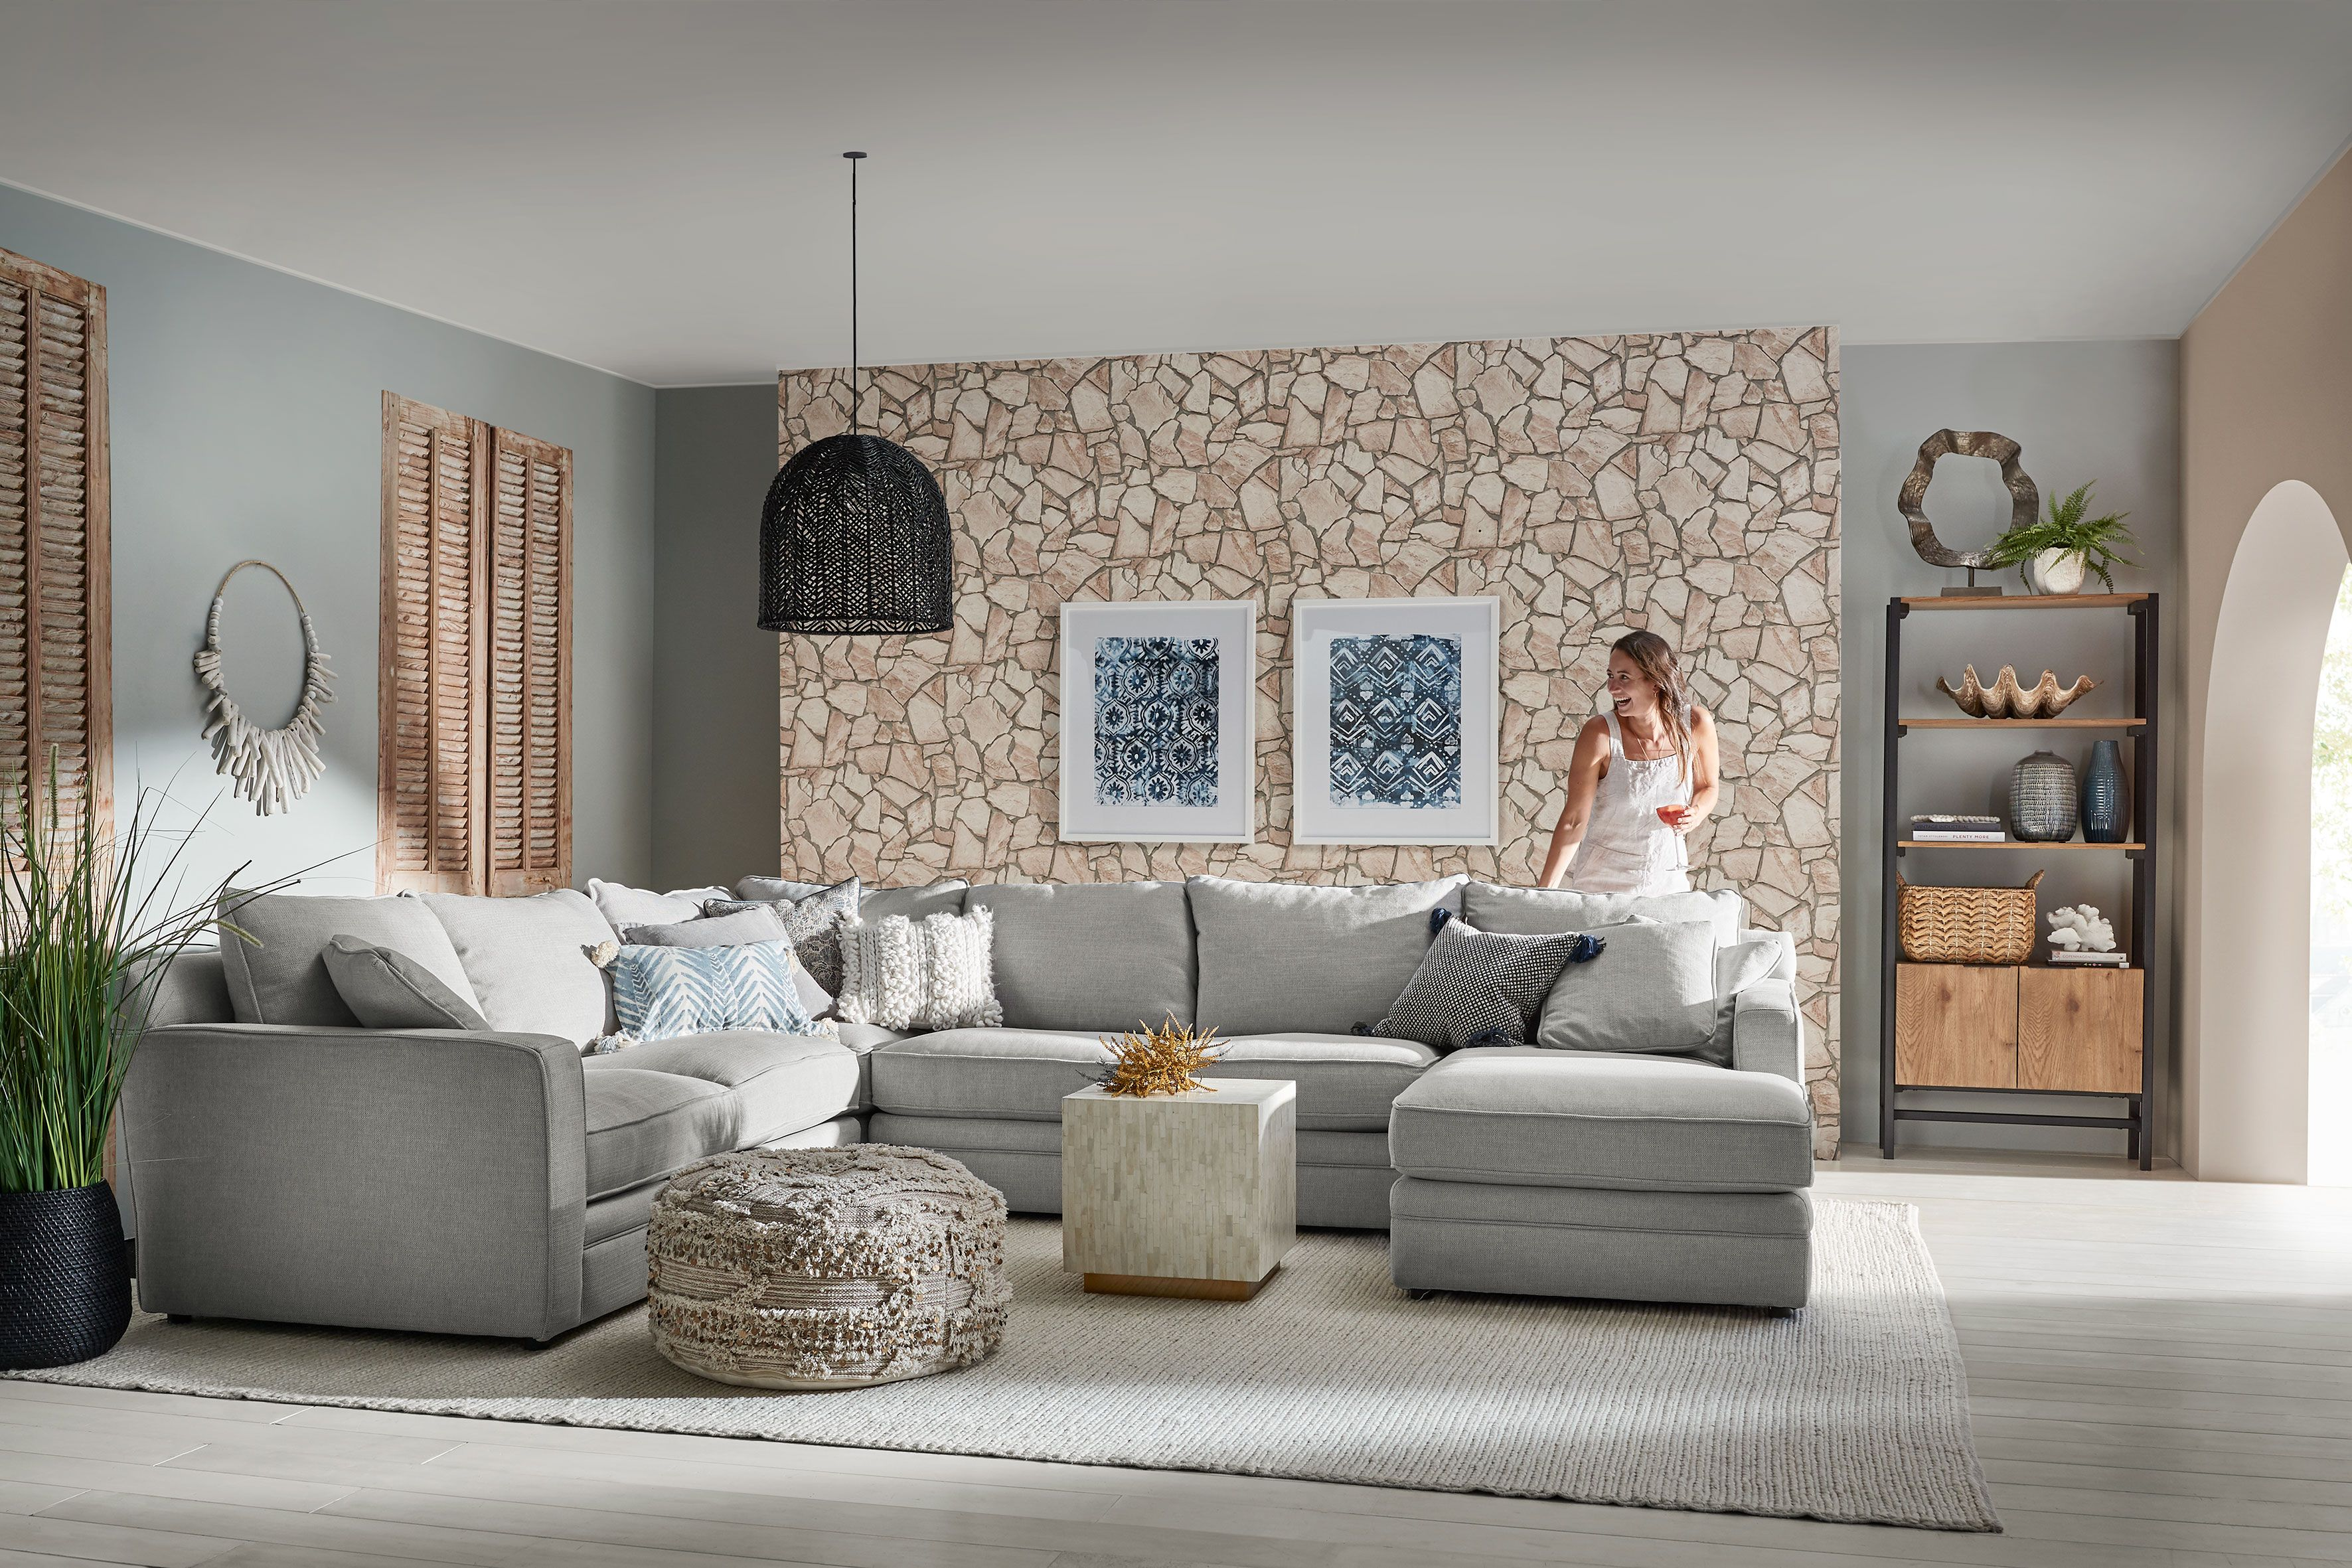 Large Range Of Sofas View Range Online Now Andersen Mkii Laf Mod 2 5s Cnr 2 5s Al Raf Chaise Talent Cloud Trending Decor Modular Couch Home Decor